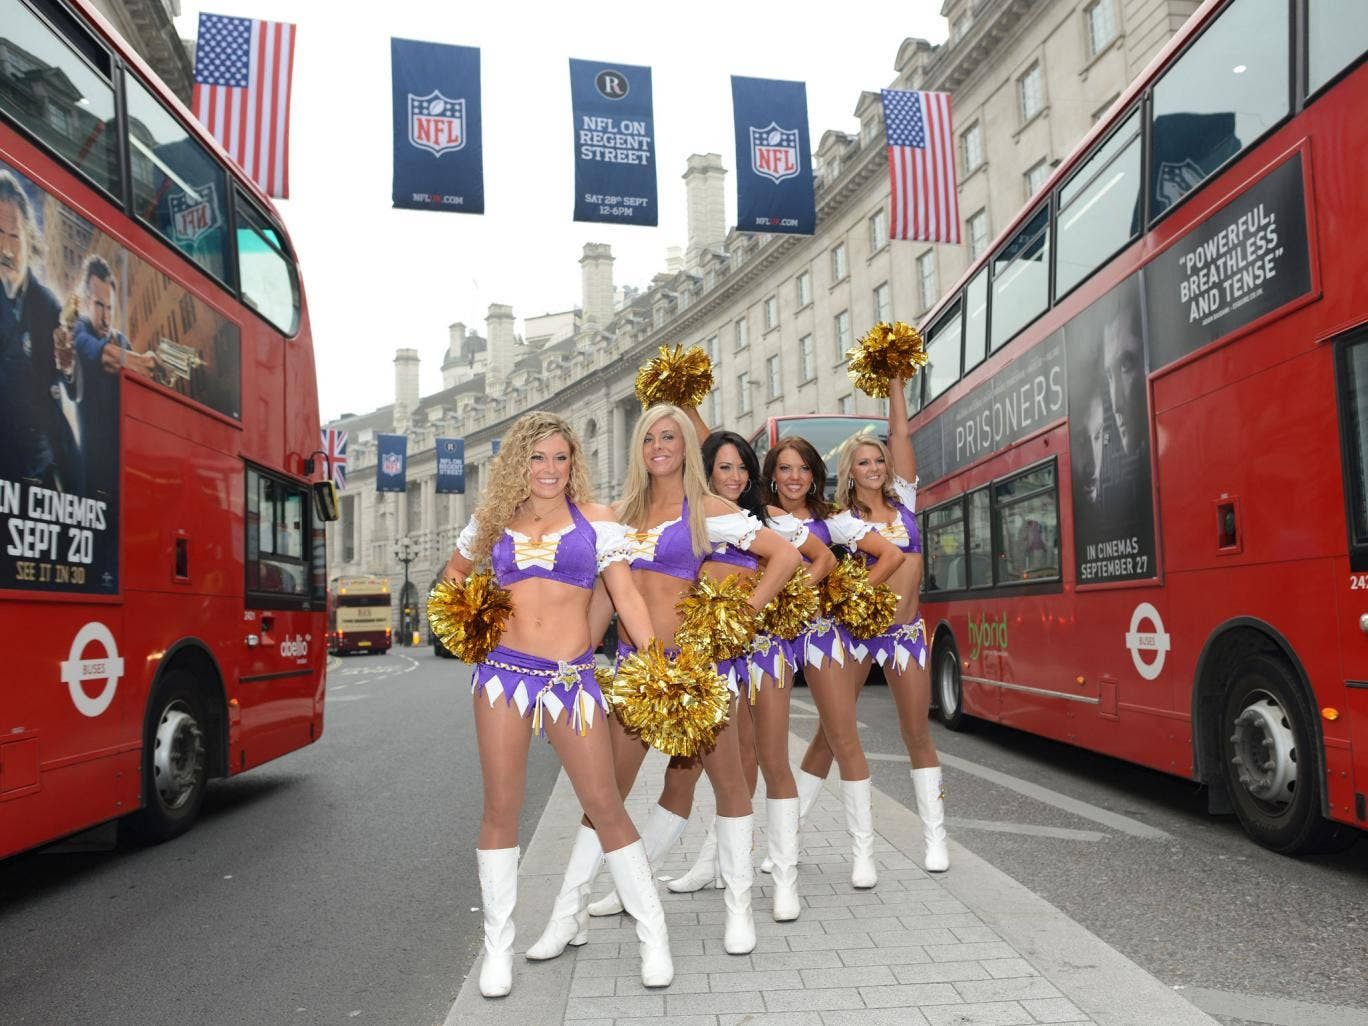 The NFL presence in London is full of hype, given the quality